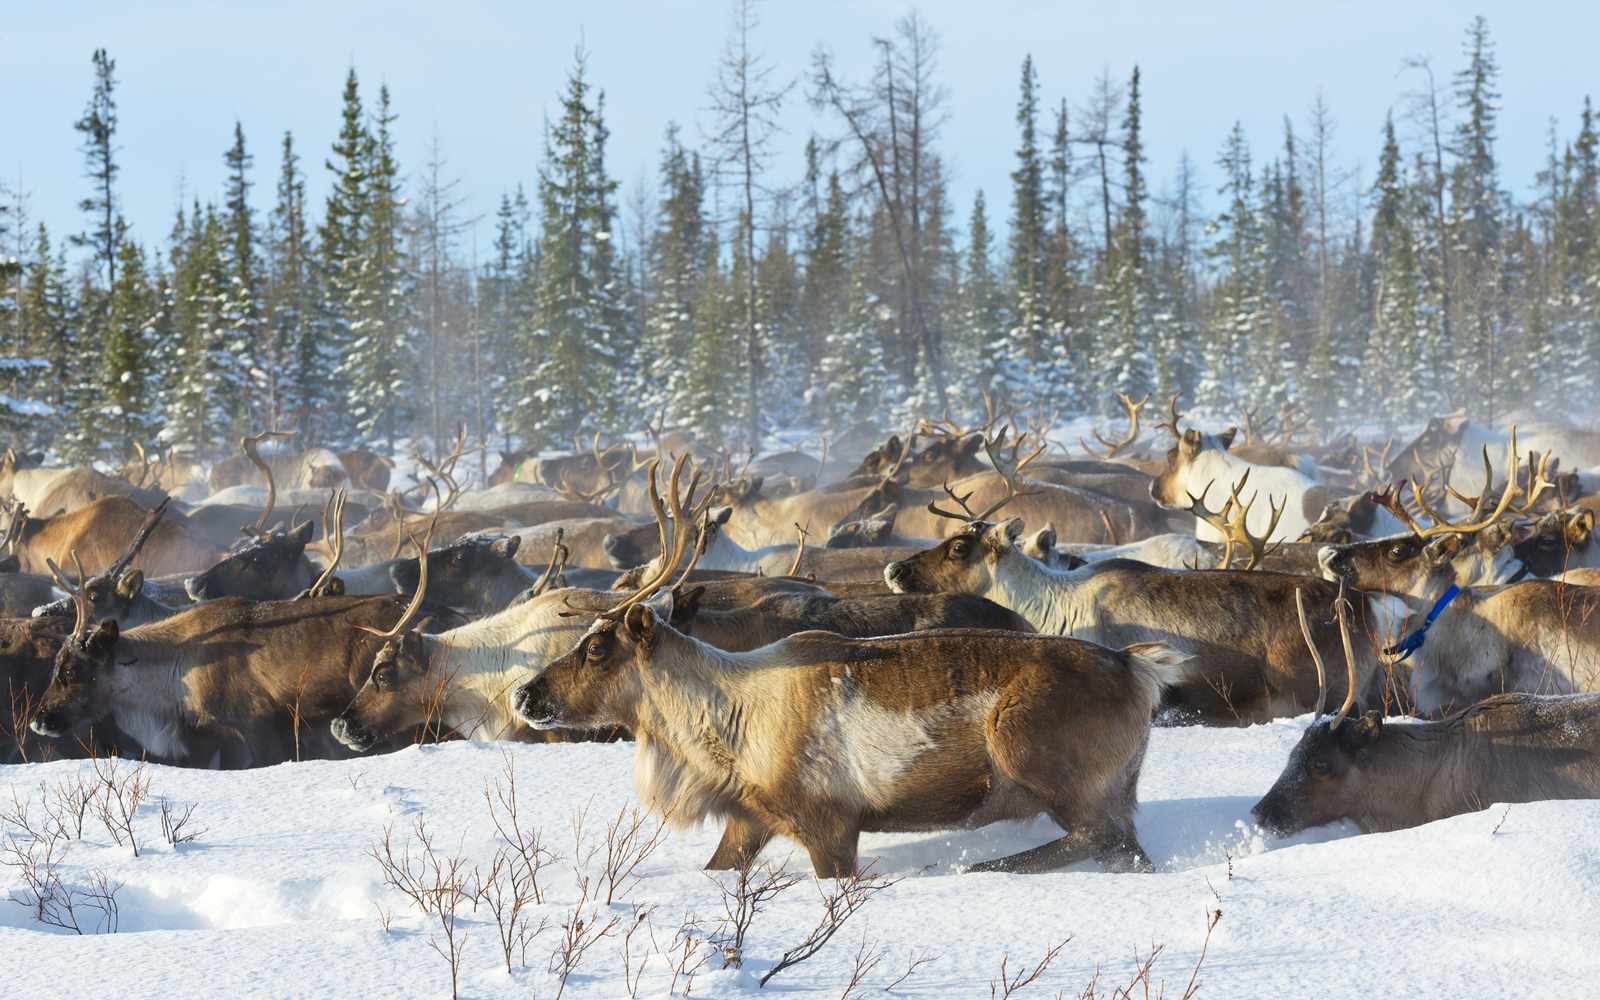 The reindeer Rangifer tarandus also known as the caribou in North America is a species of deer with circumpolar distribution native to Arctic subArctic tundra boreal and mountainous regions of northern Europe Siberia and North America This includes both sedentary and migratory populations